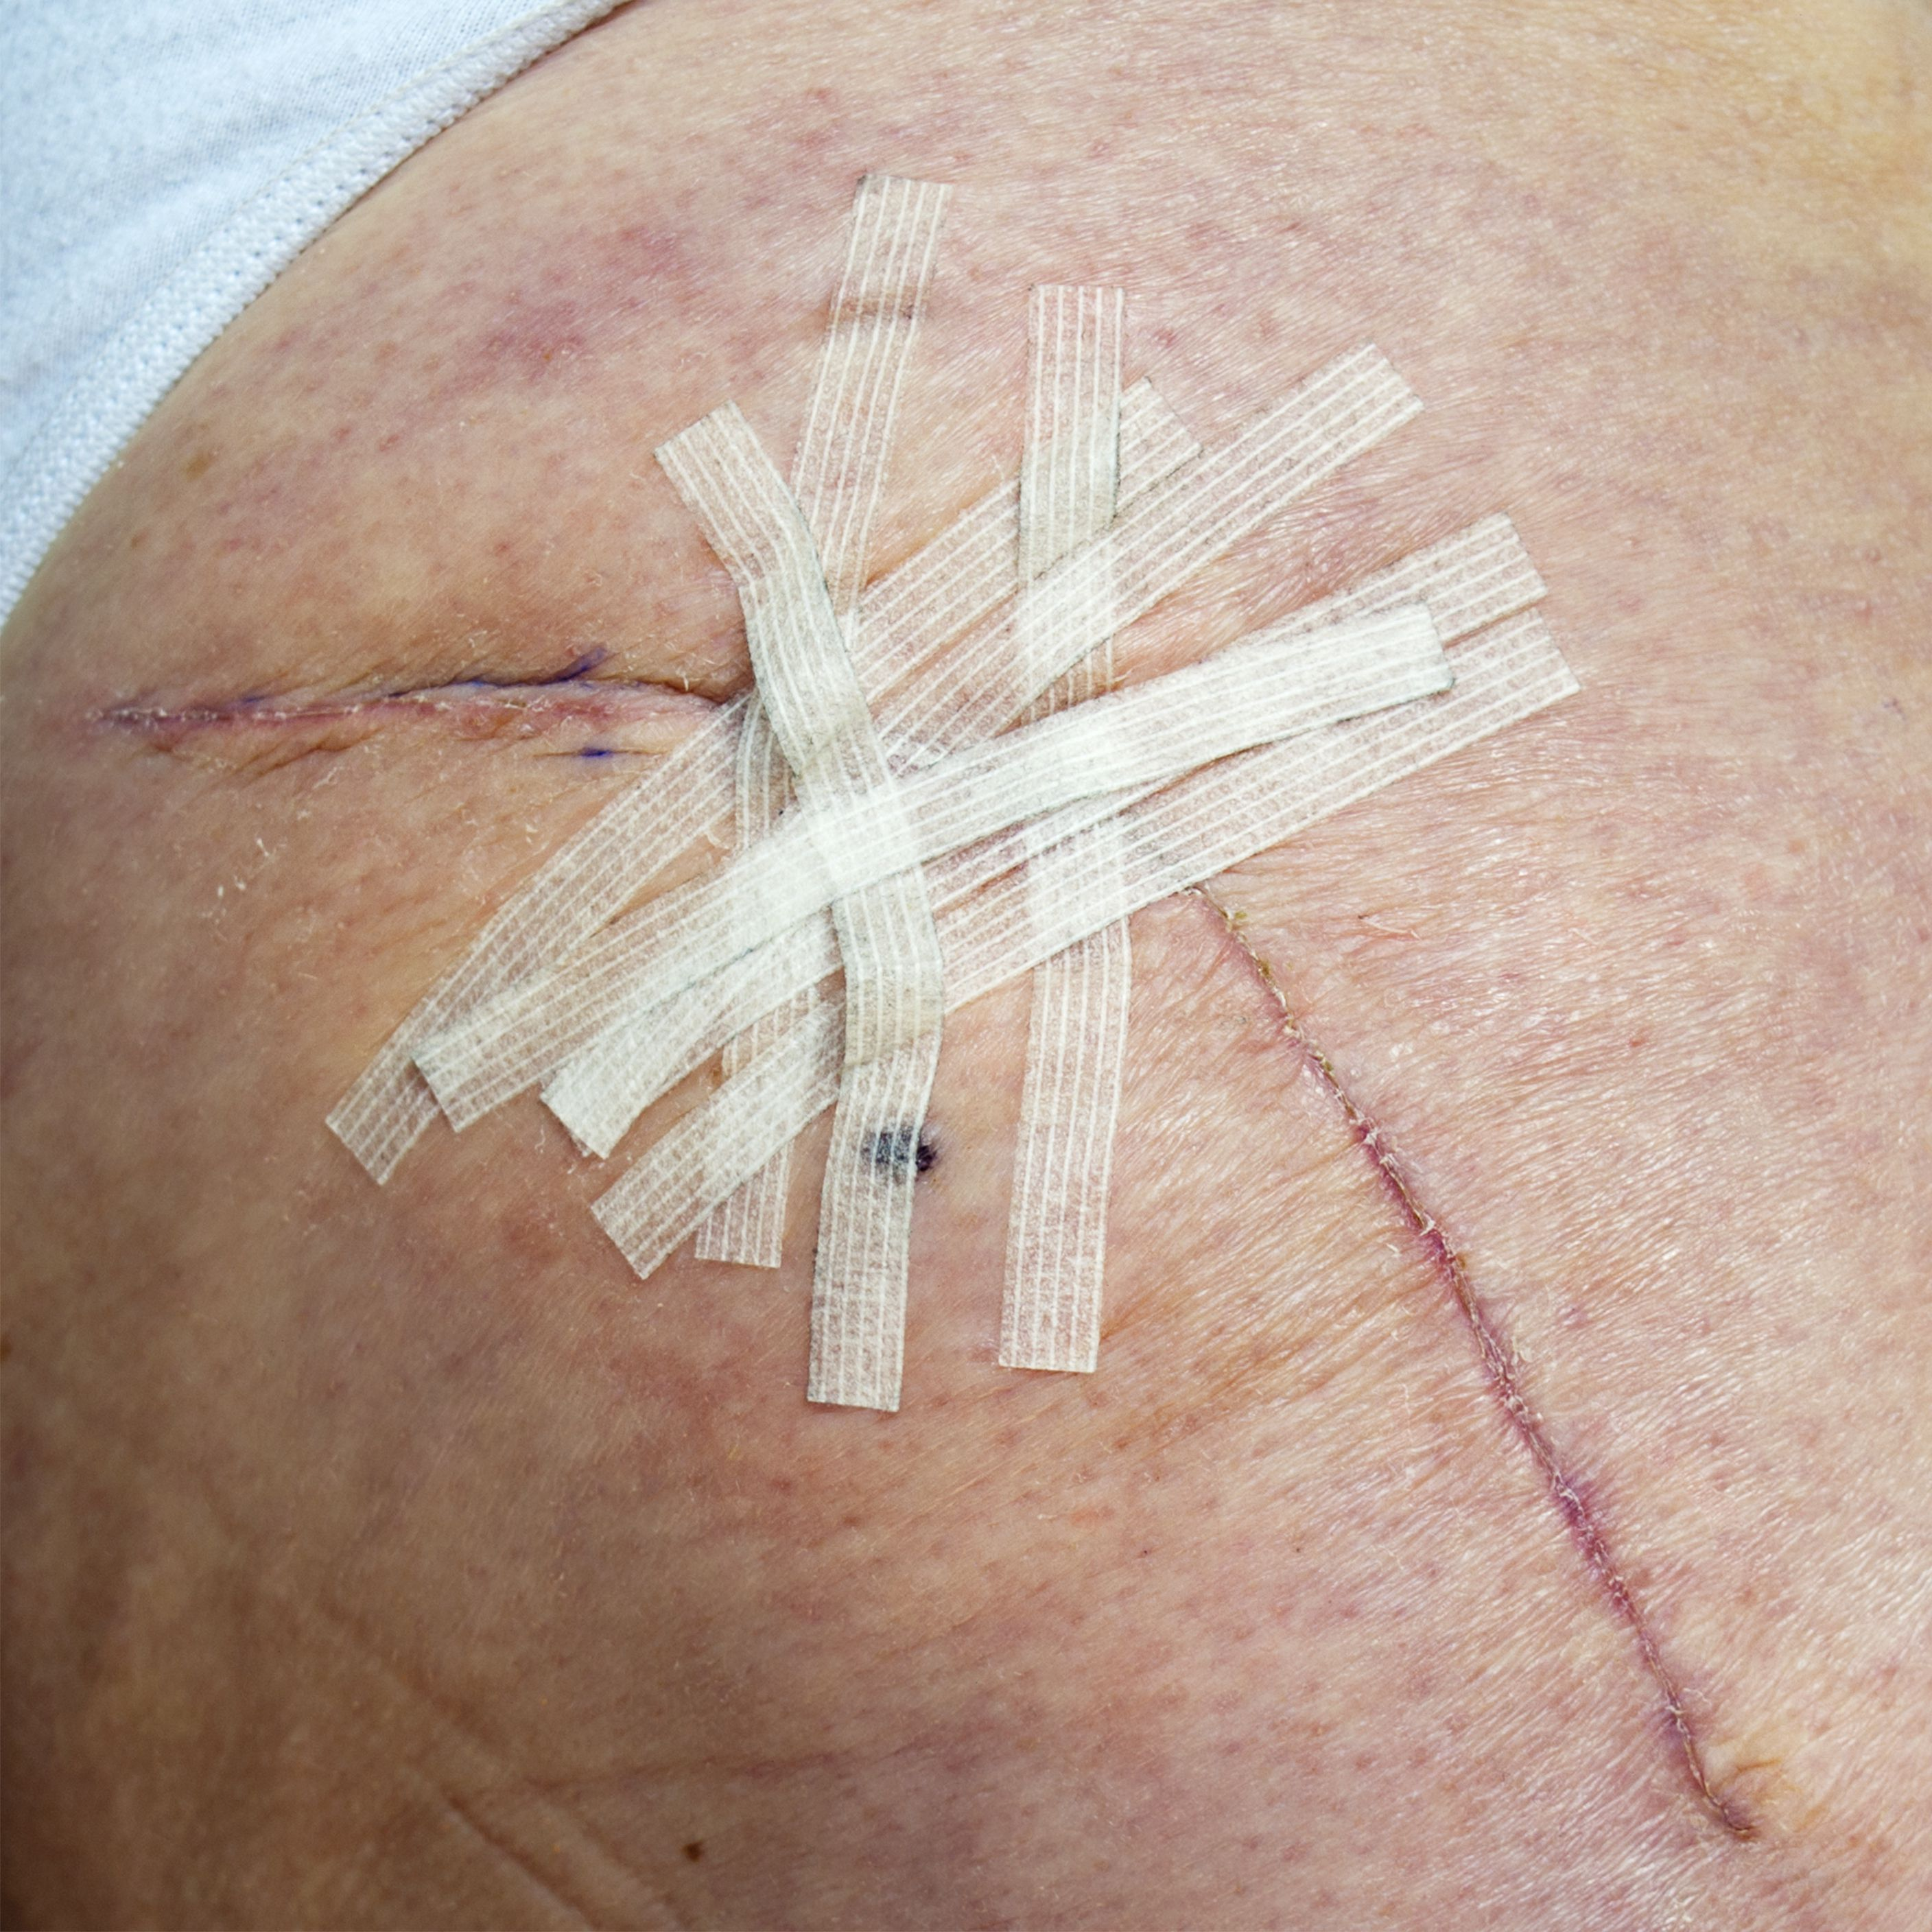 How to Remove Steri-Strips Safely After Surgery